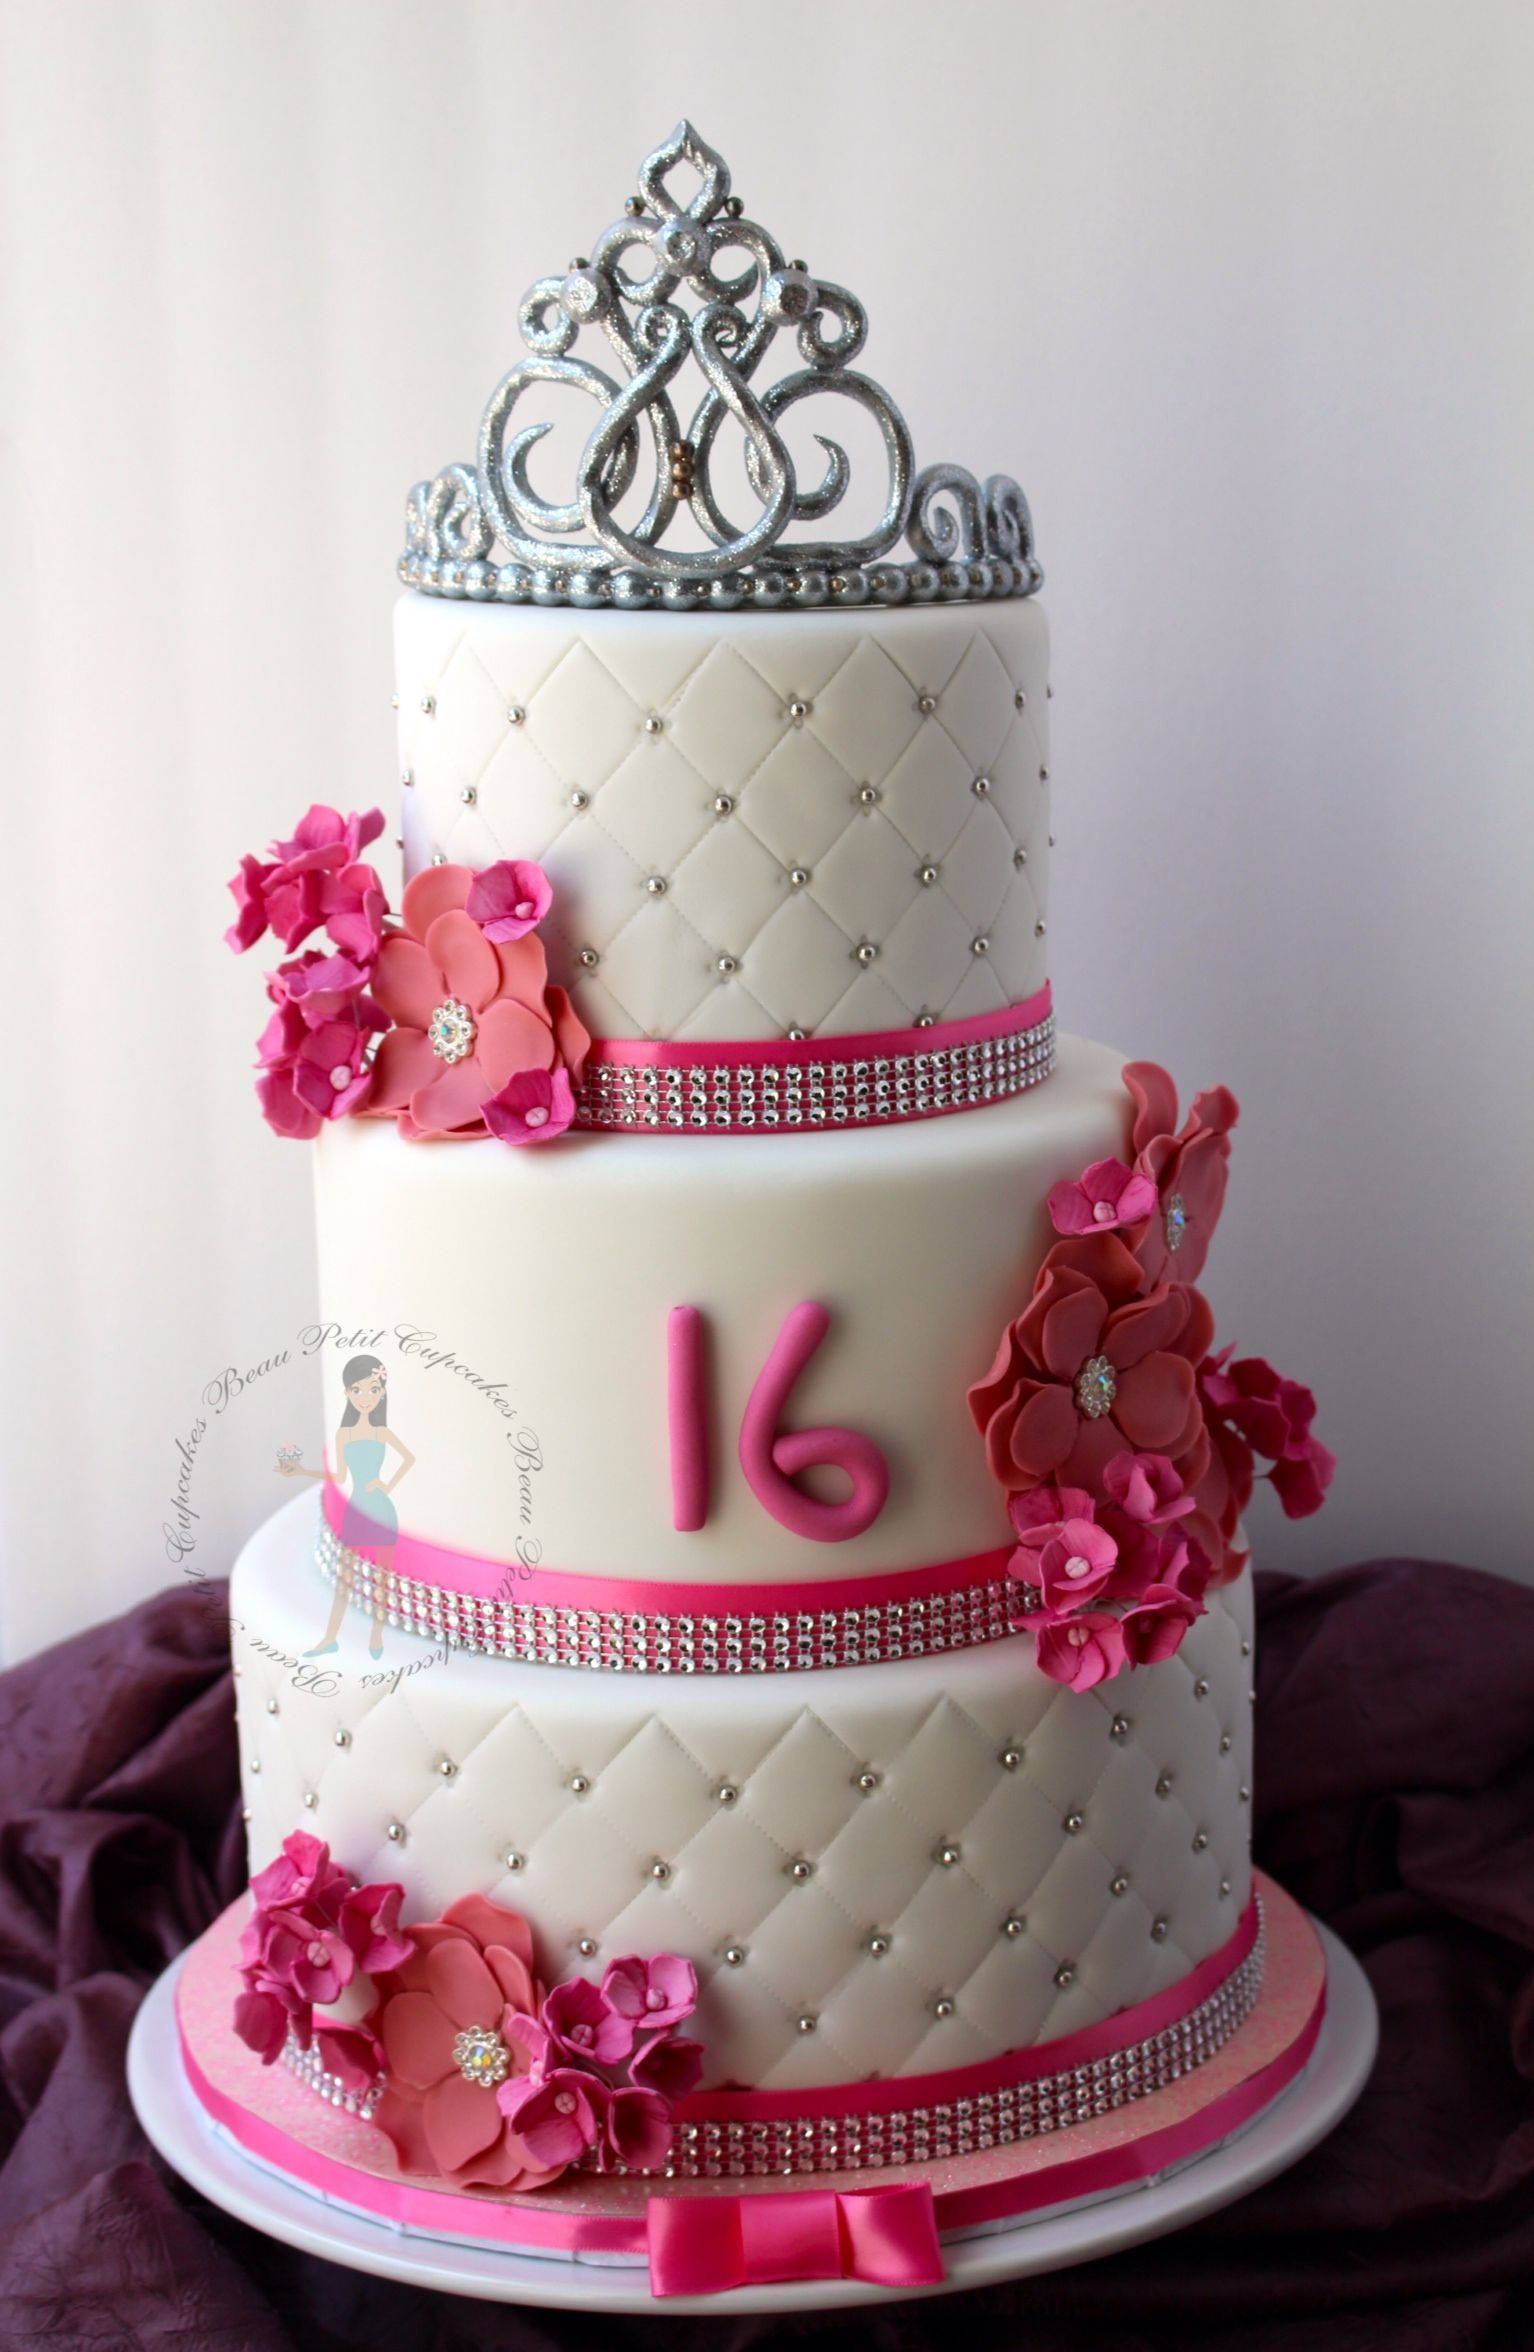 Sweet 16th A Sweet 16th Birthday Cake For A Princess